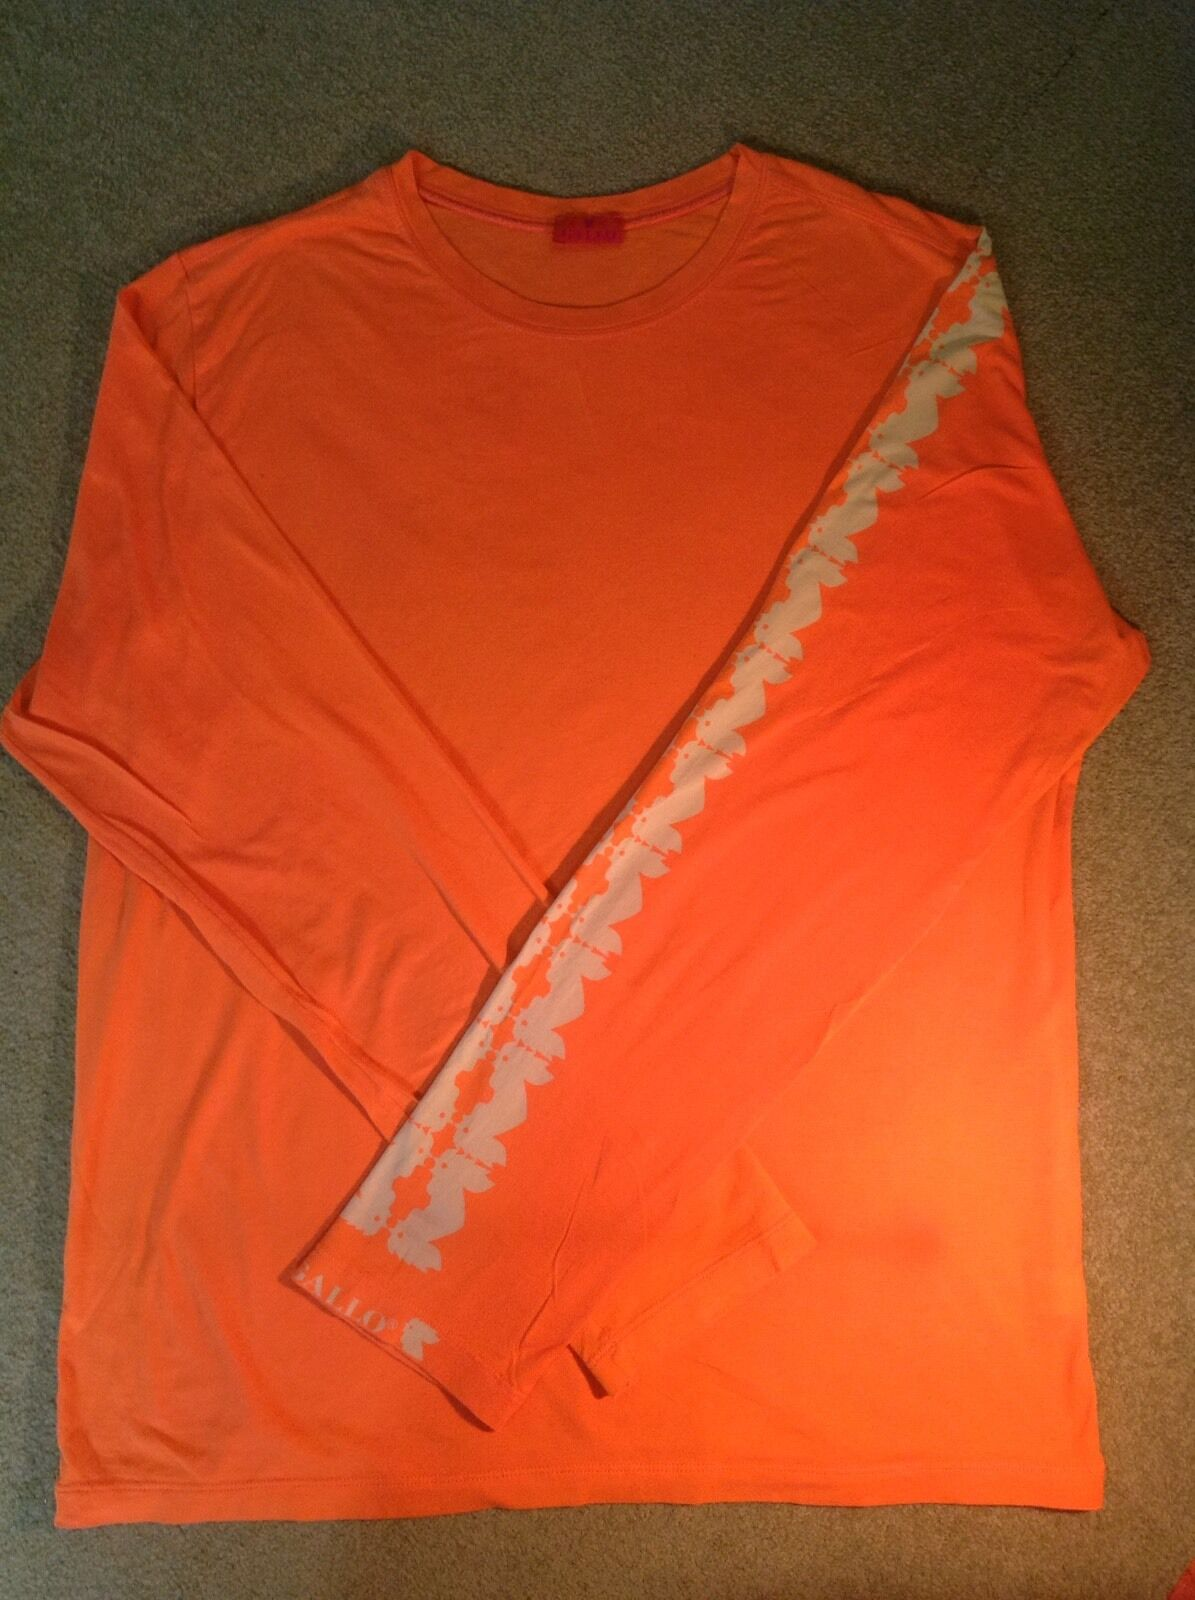 GALLO of ITALY  - LONG SLEEVE T hemd - Orange W ROOSTER LOGO ON SLEEVE -SZ M